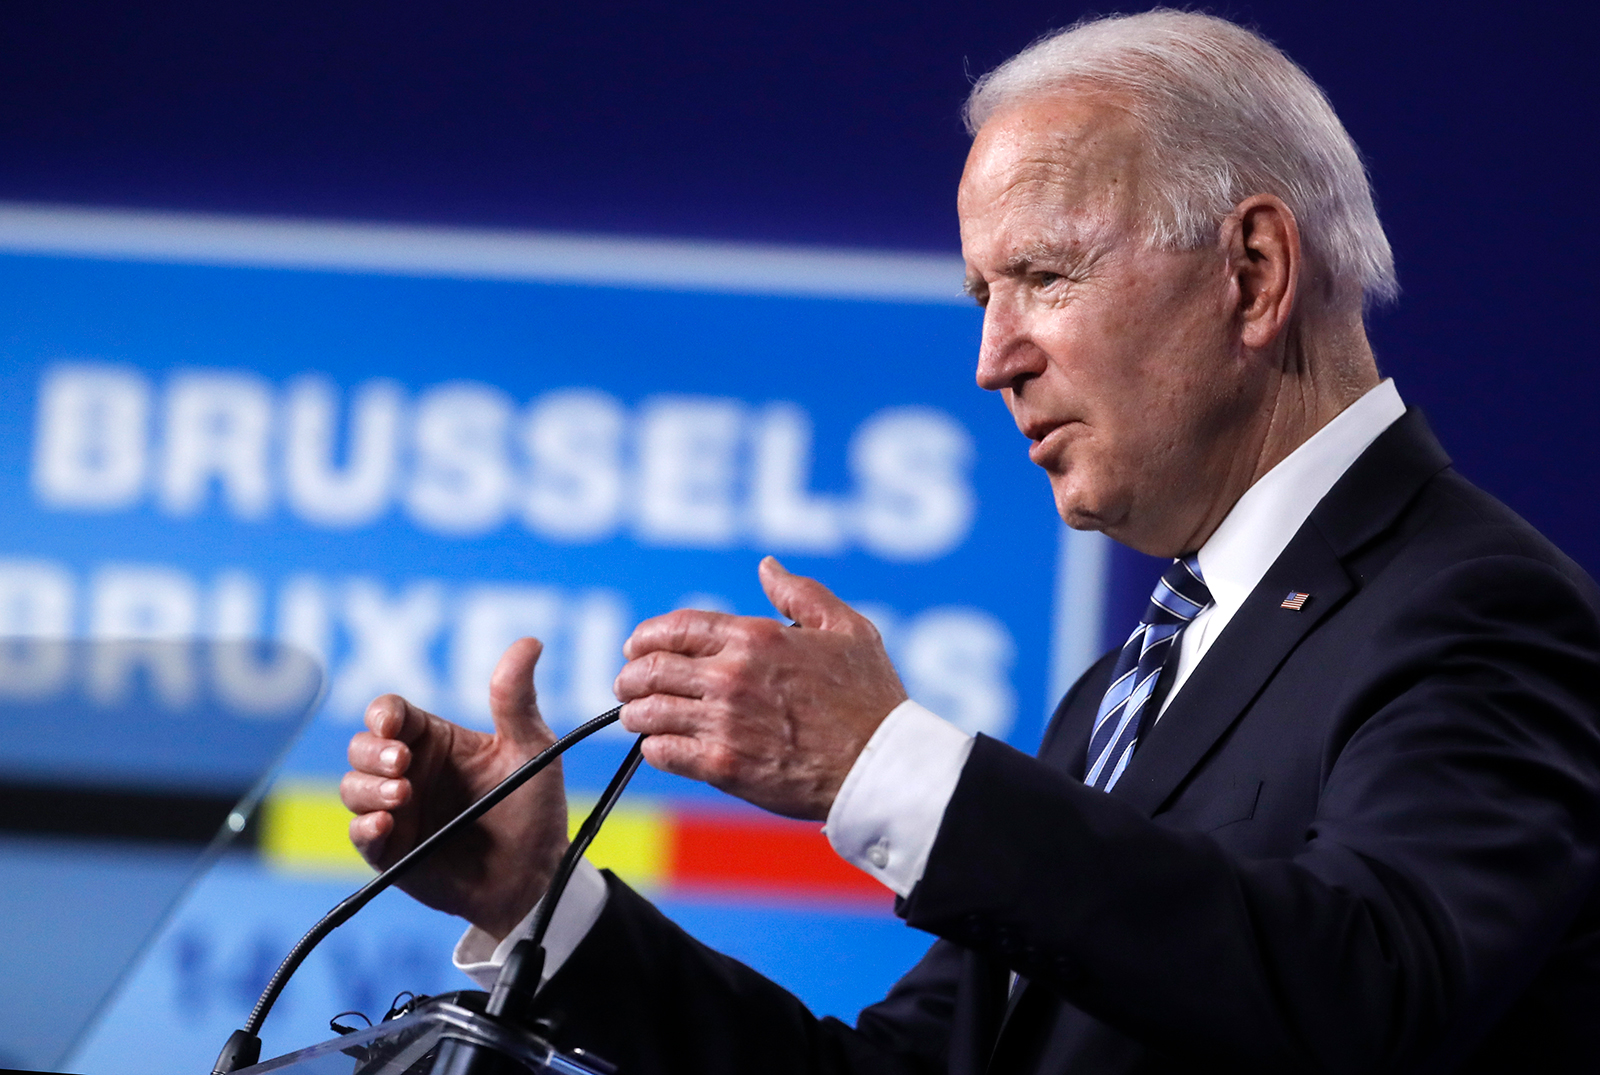 President Joe Biden speaks during a media conference at a NATO summit in Brussels, Monday, June 14.